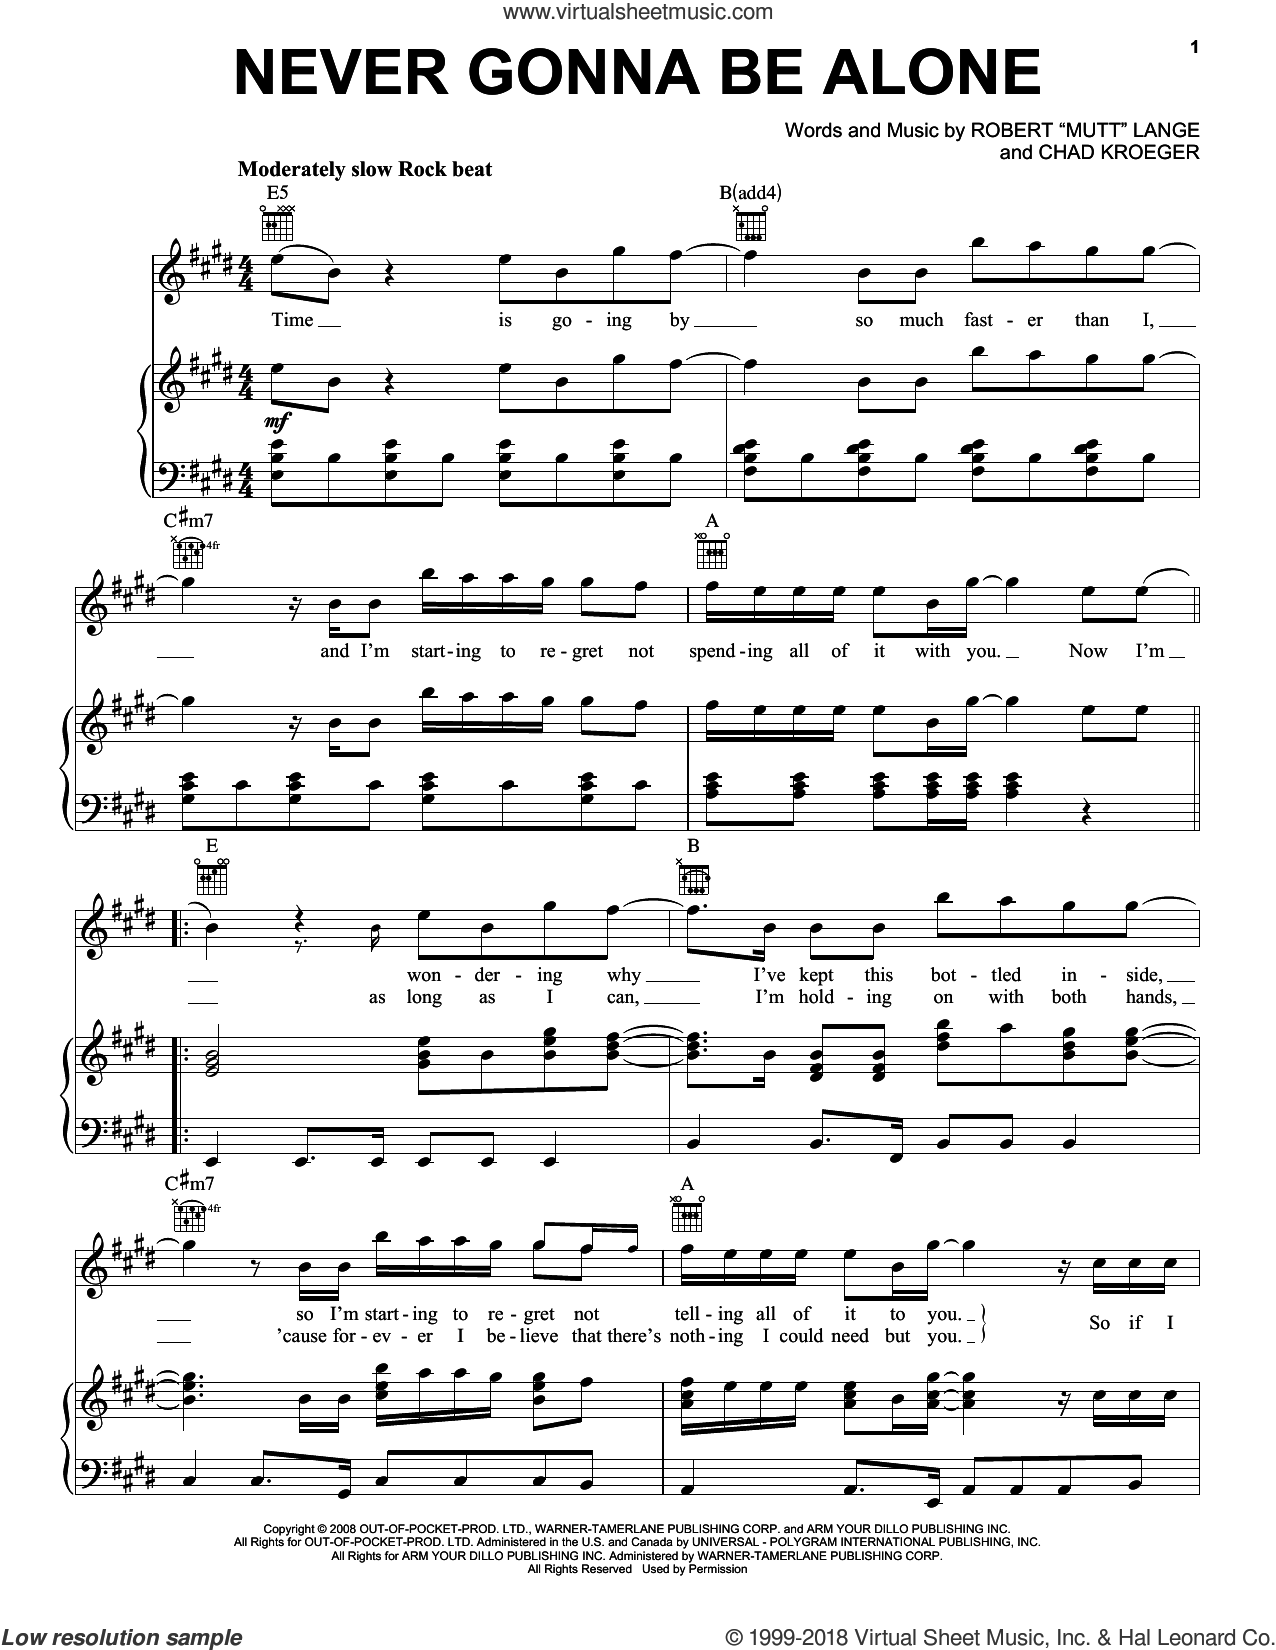 Never Gonna Be Alone sheet music for voice, piano or guitar by Robert